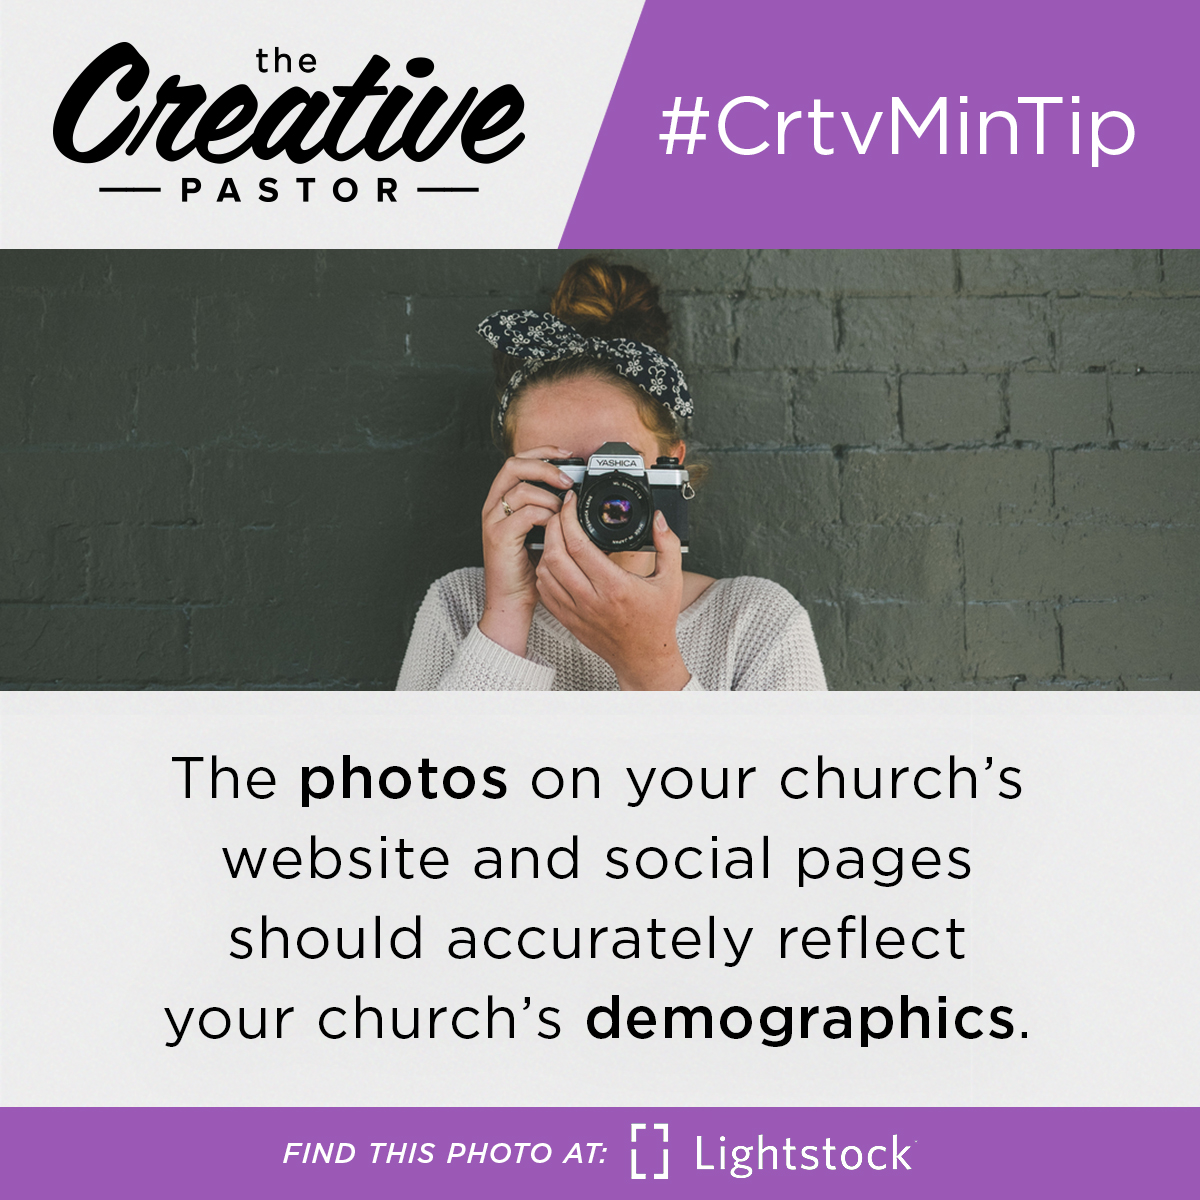 #CrtvMinTip: The photos on your church's website and social pages should accurately reflect your church's demographics.